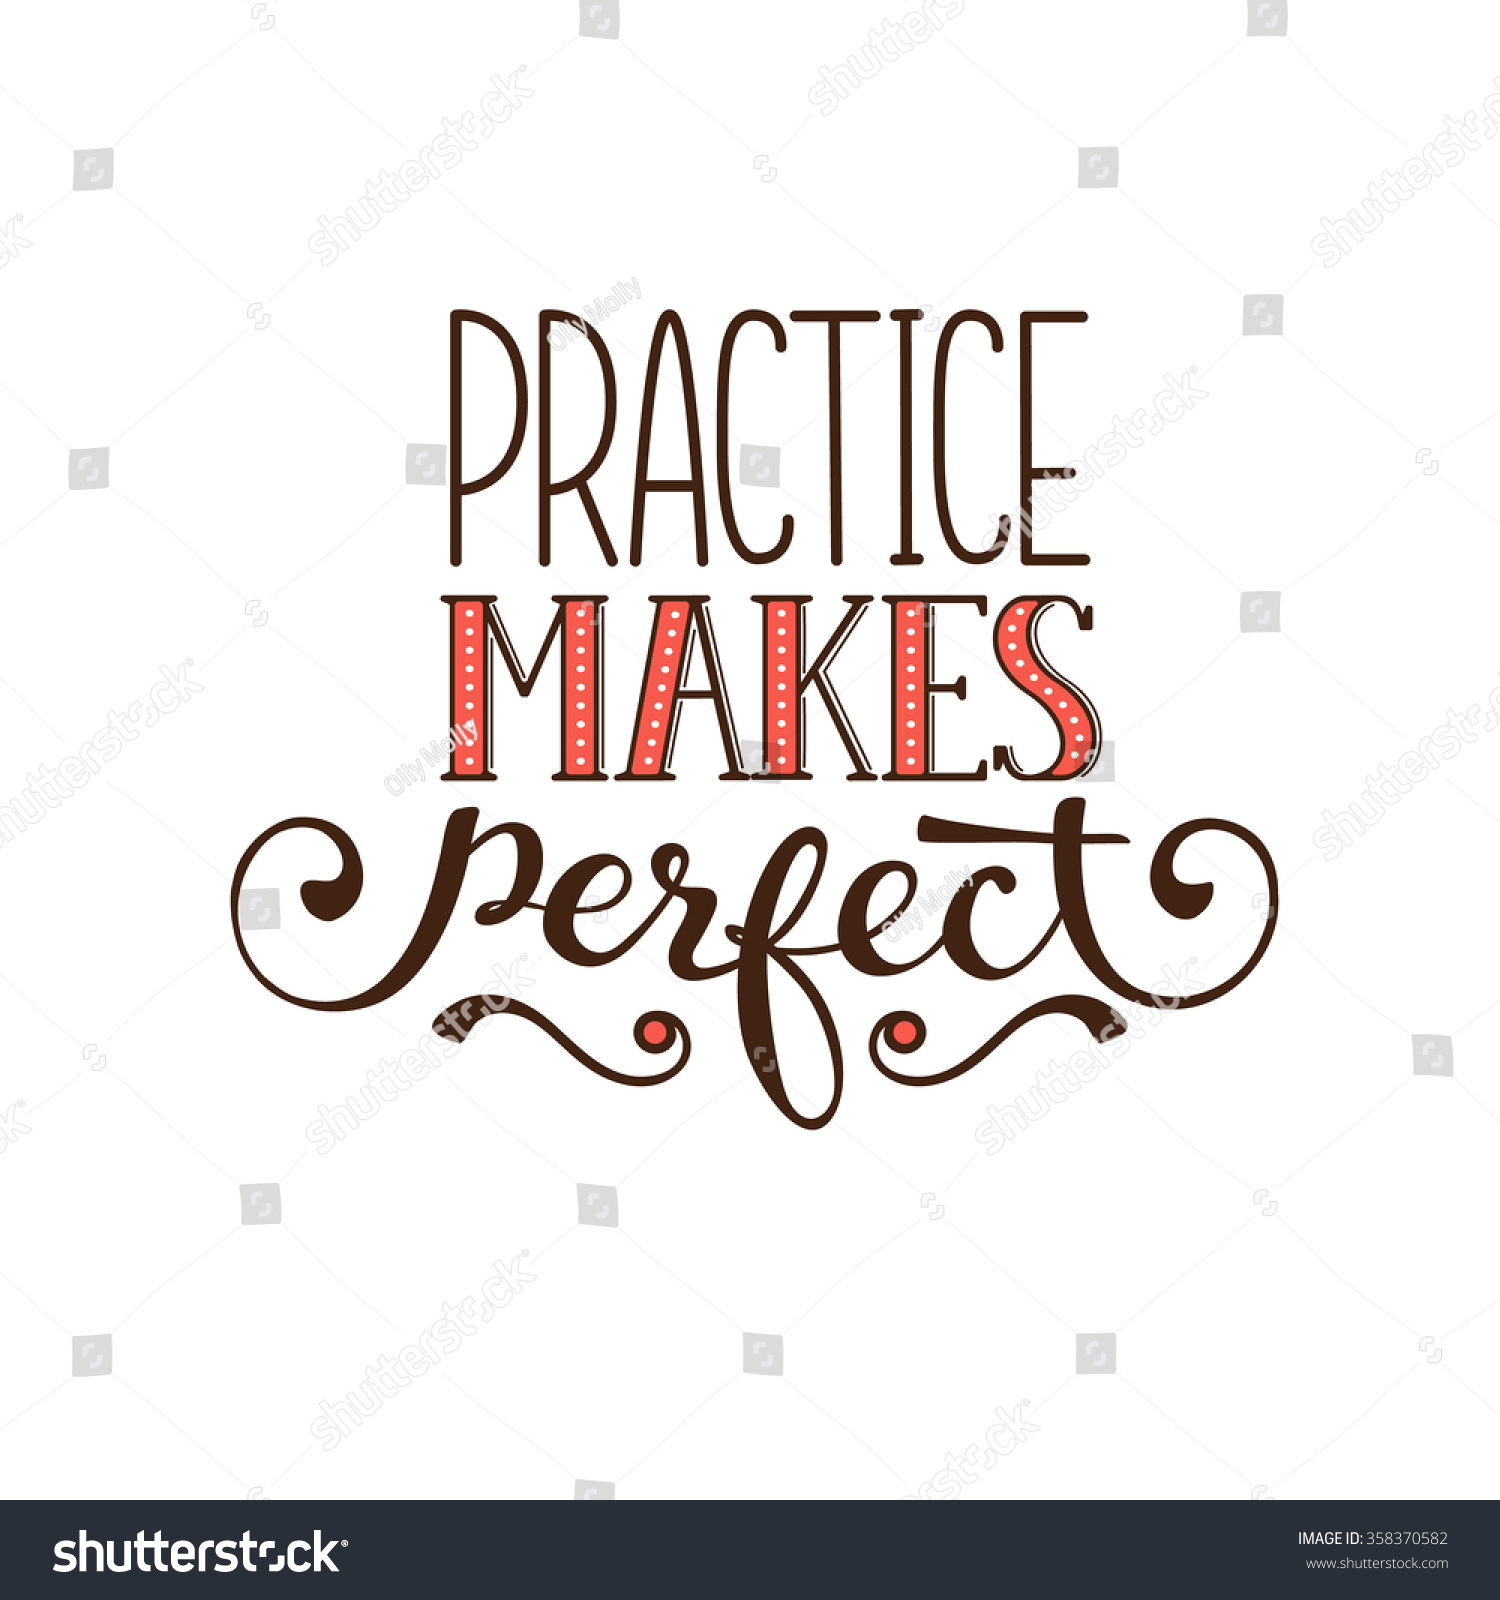 Is practice make perfect in forex